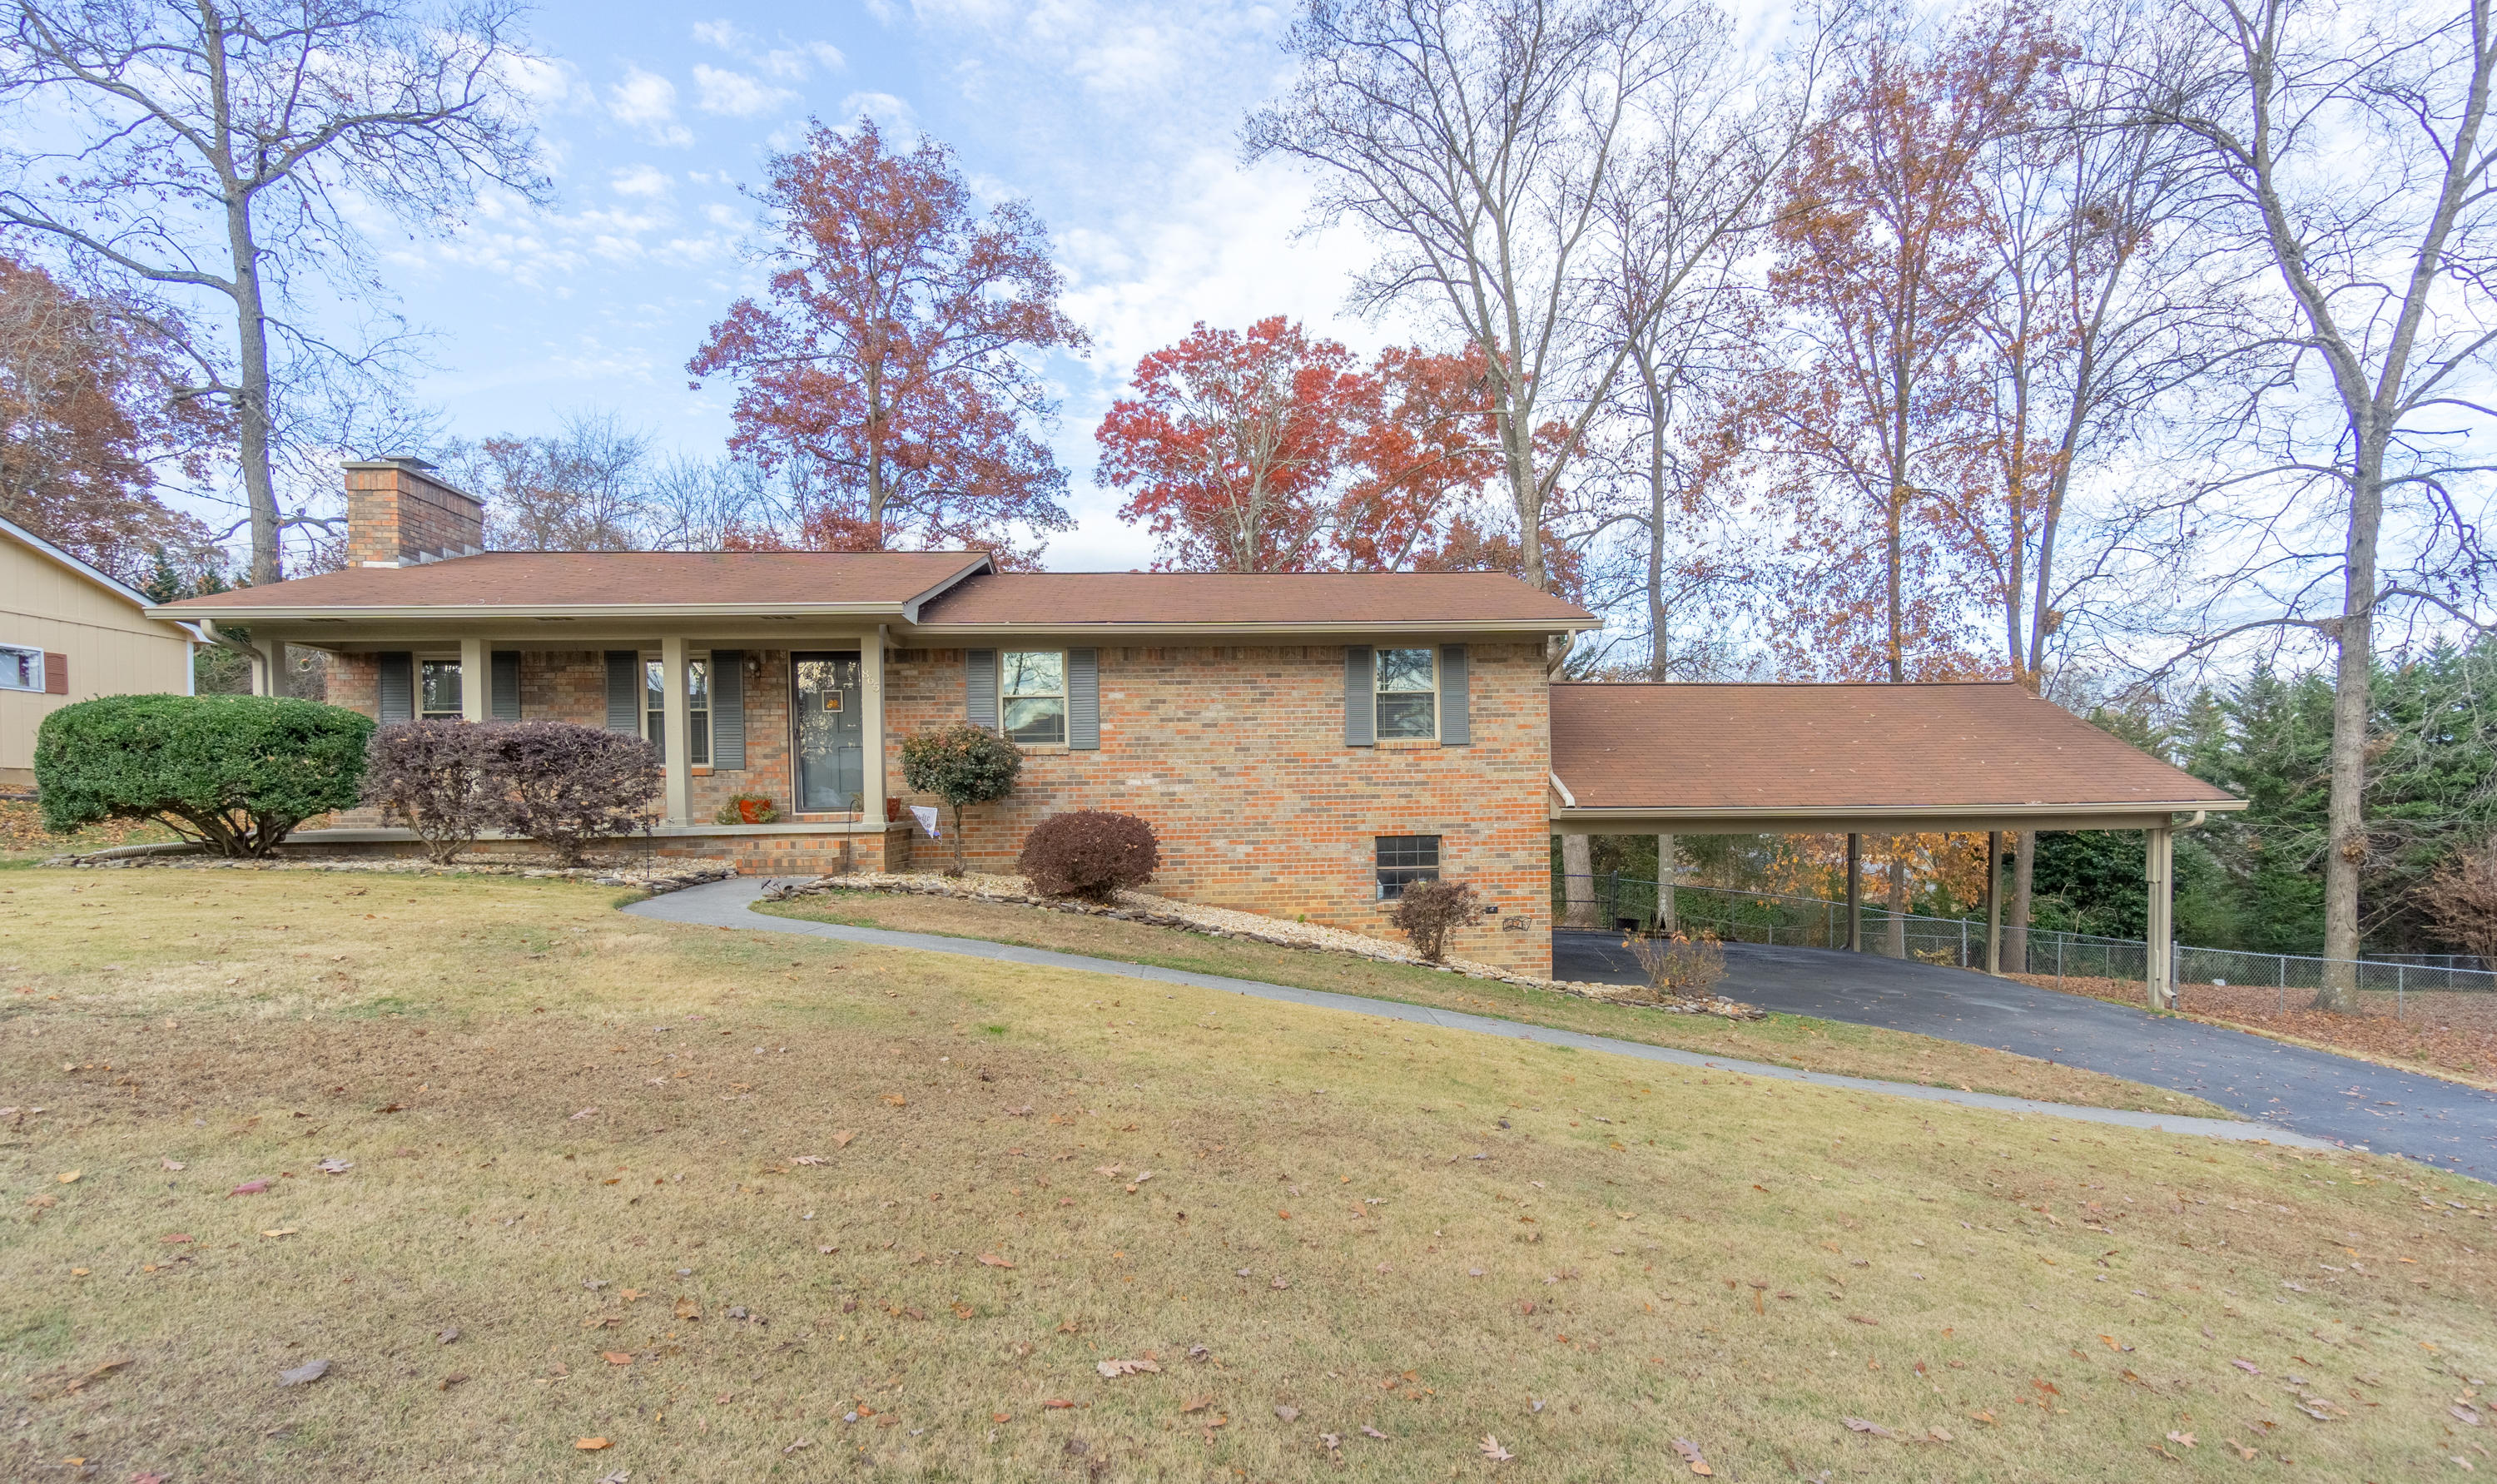 865 Mansion Hill Cir, Cleveland, TN 37312